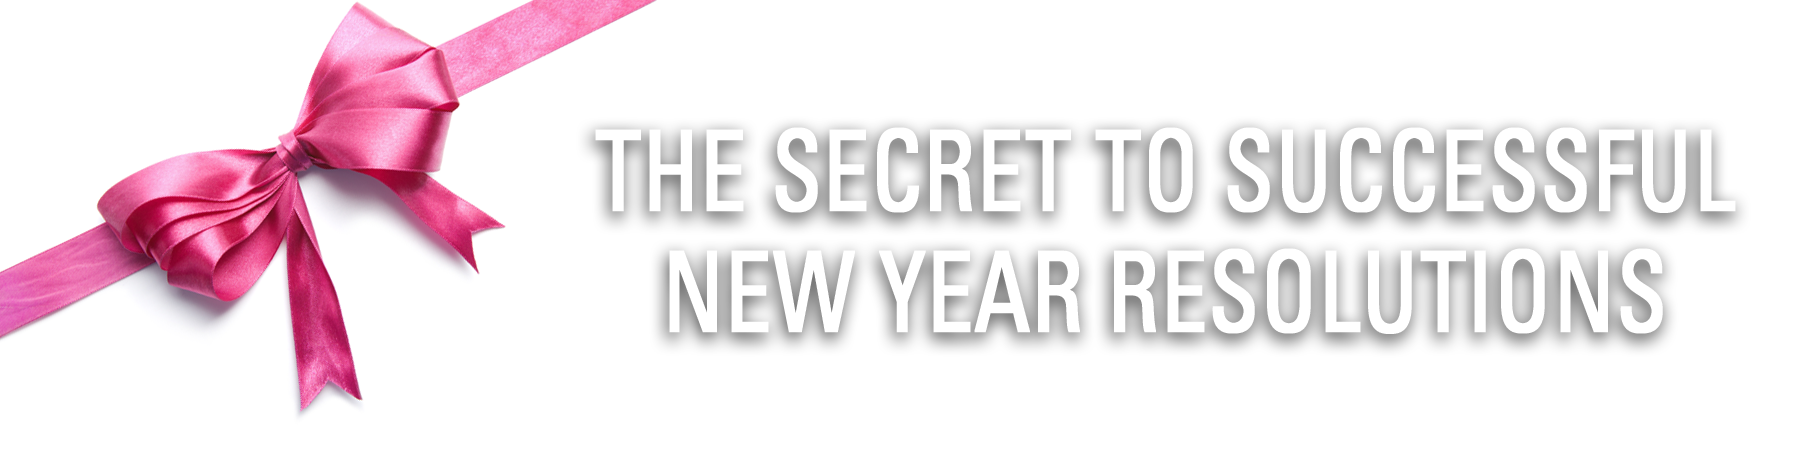 The Secret To Successful New Year Resolutions